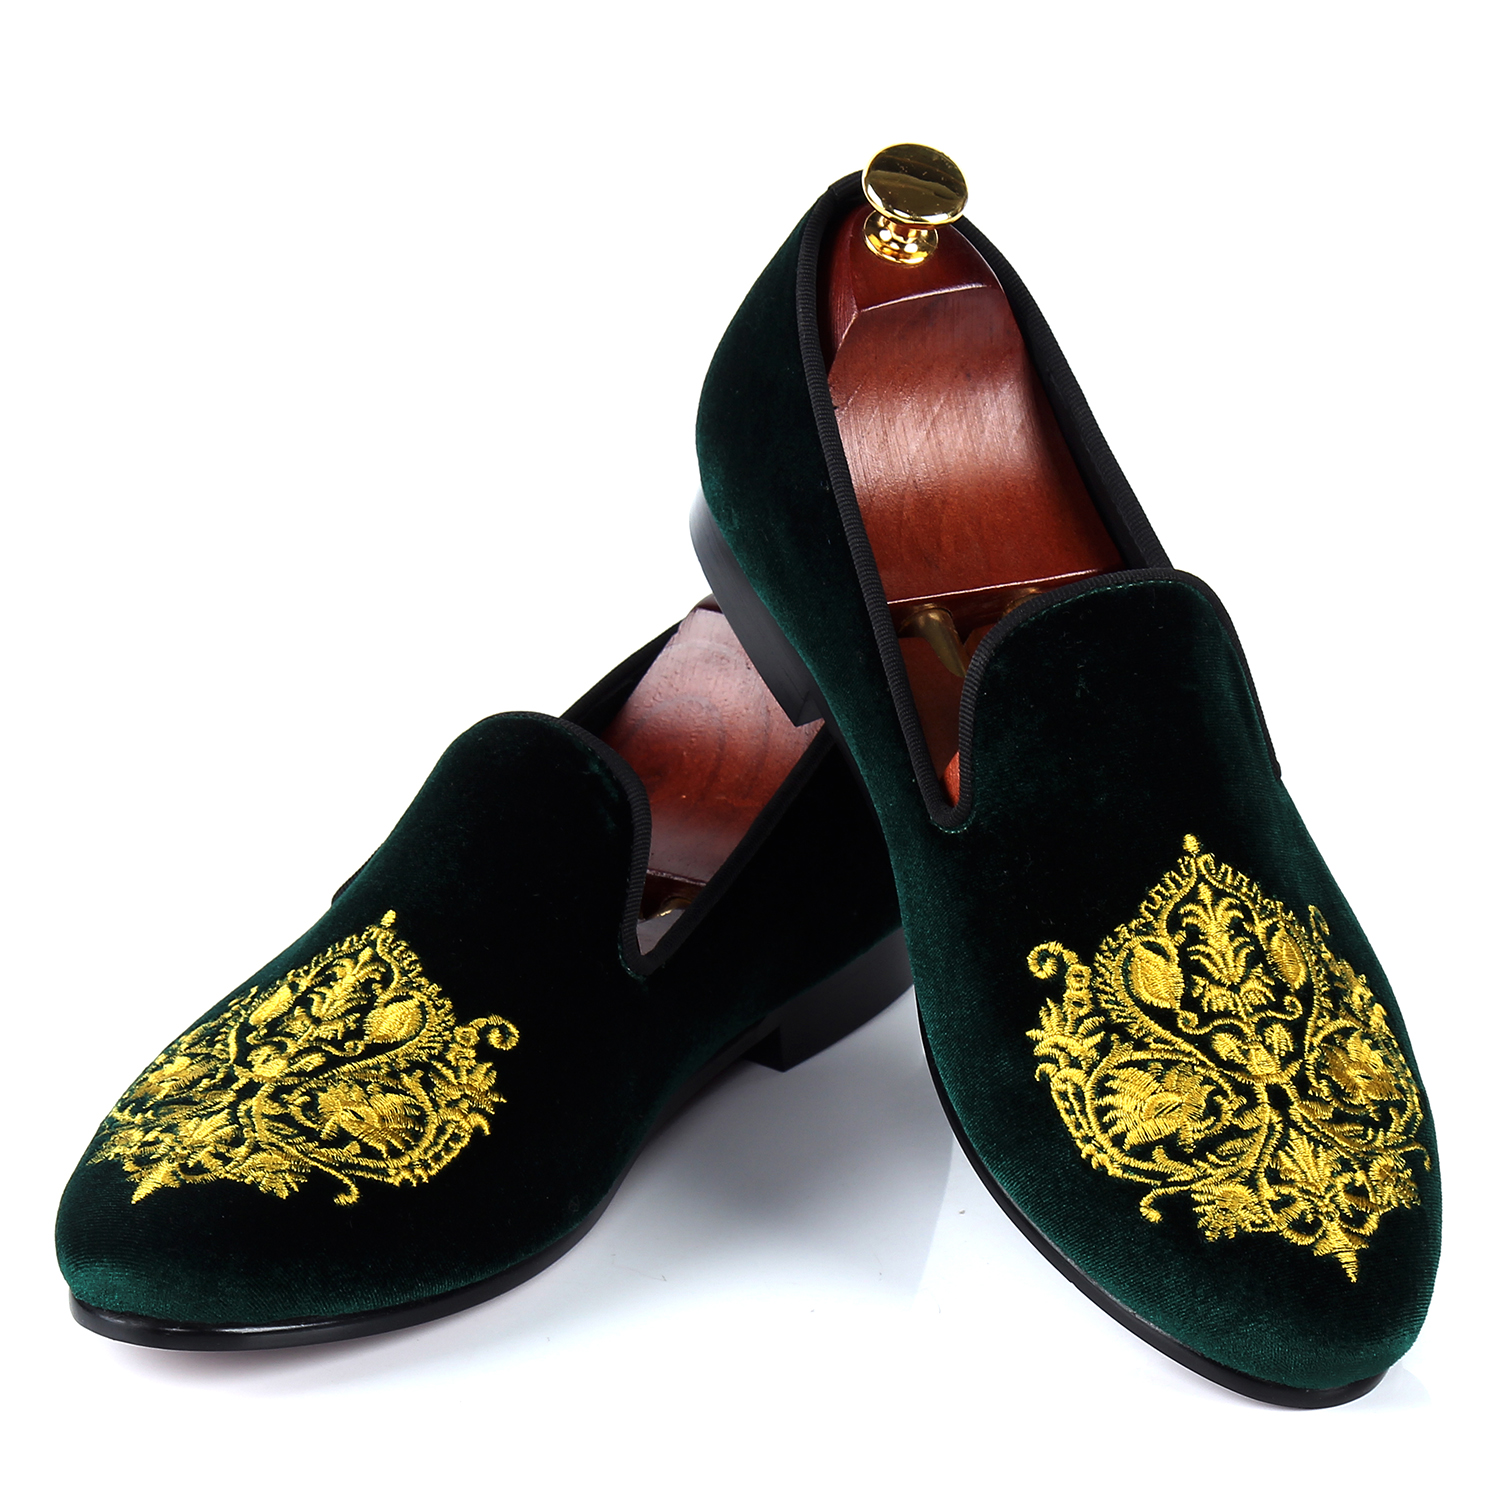 Men Casual Shoes Green Velvet Loafers Prince Albert Slippers Handmade Embroidered Footwear men casual shoes green velvet loafers prince albert slippers handmade embroidered footwear